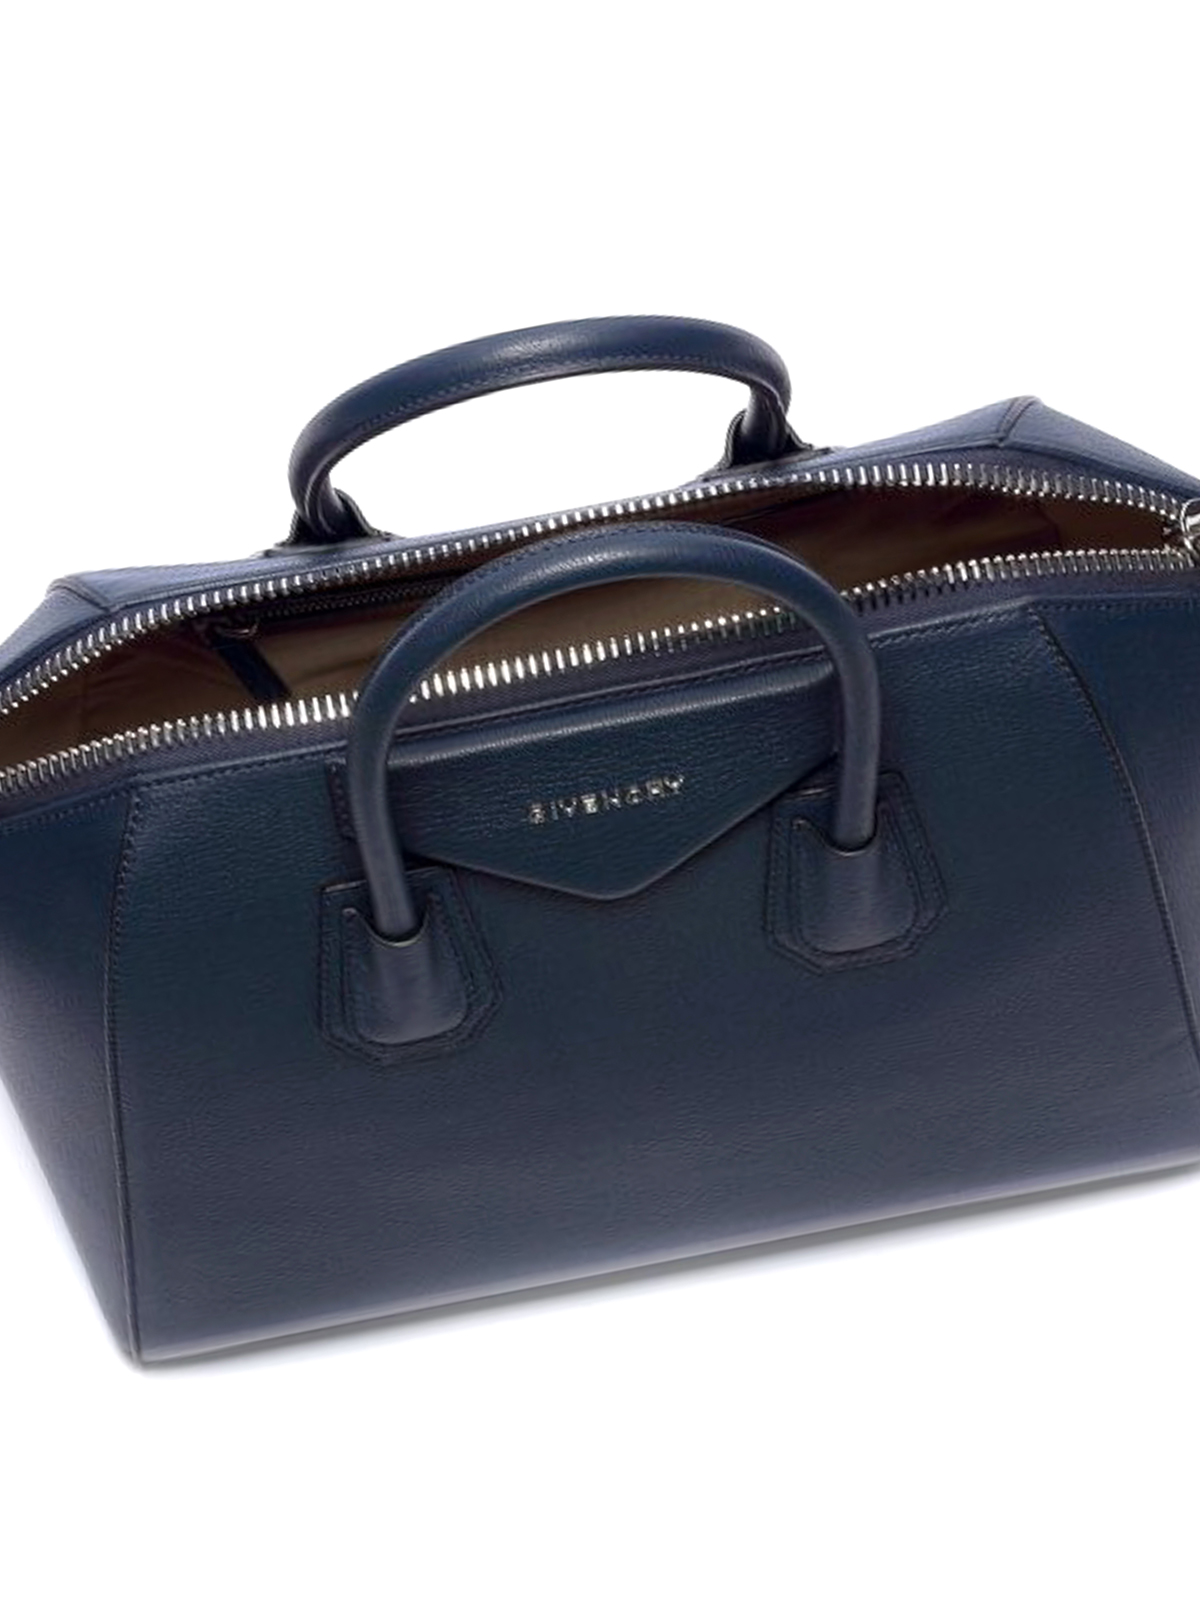 25ec7a813fae GIVENCHY buy online Antigona medium blue leather bag. GIVENCHY  bowling bags  ...